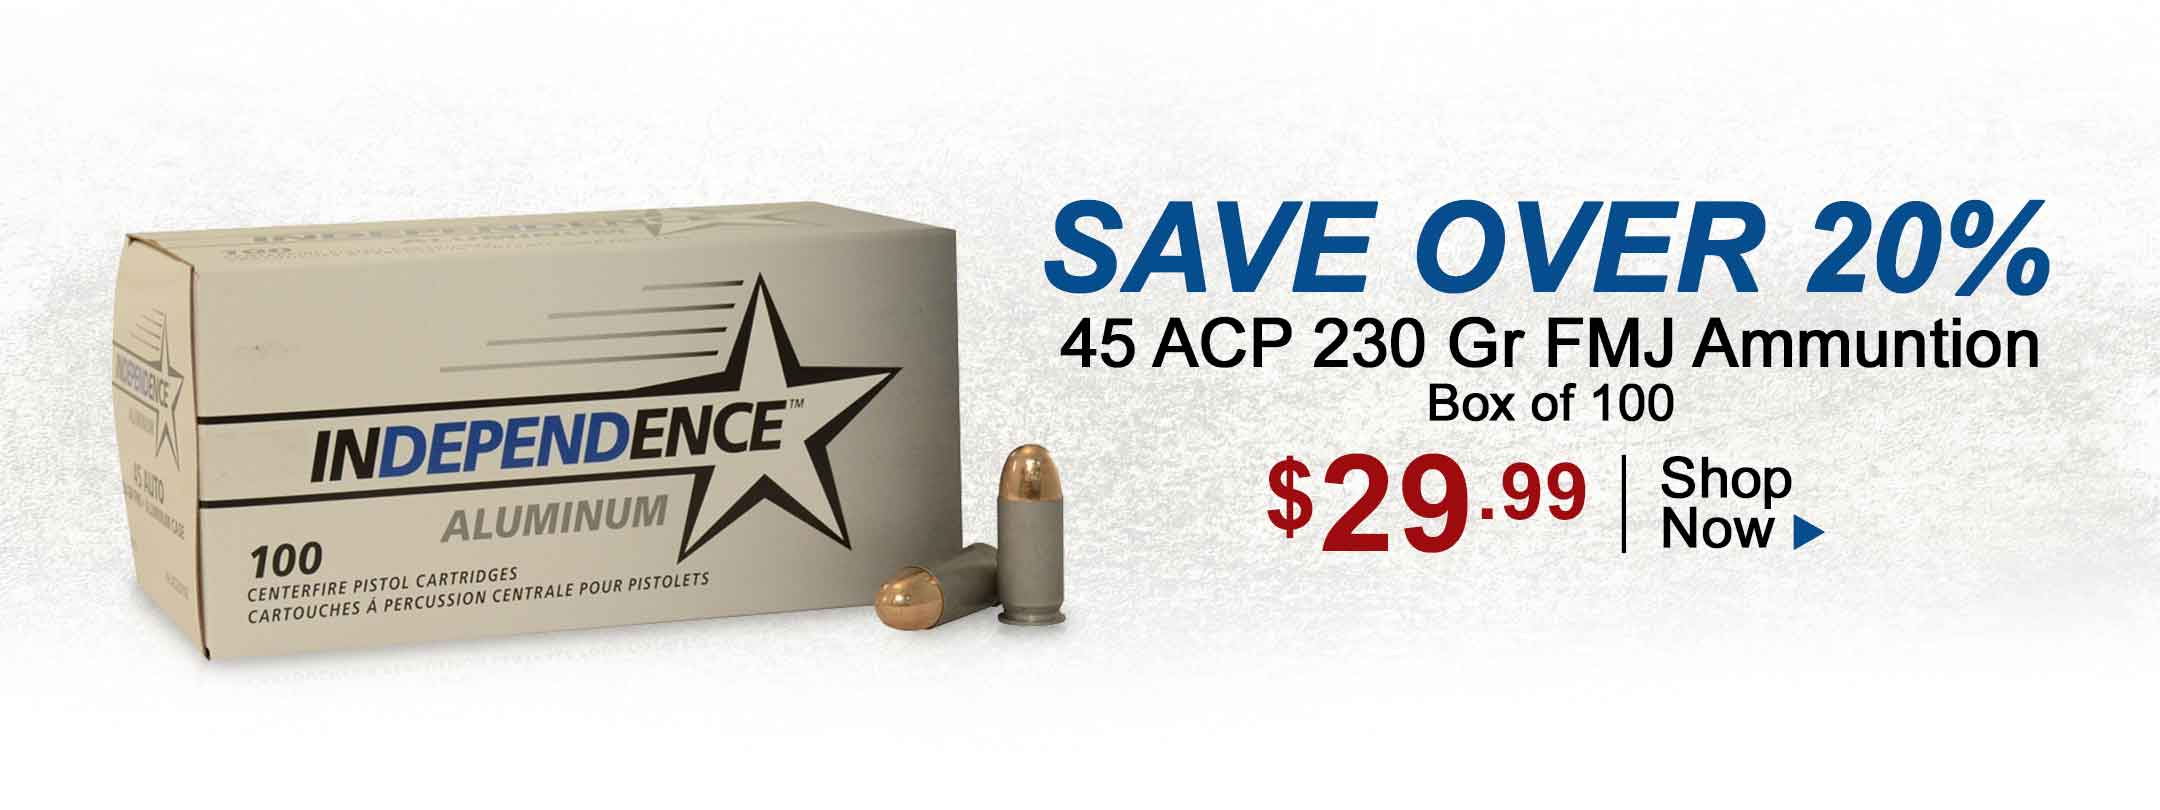 On Sale! $29.99 for Independence 45 ACP 230 Gr FMJ Box of 100